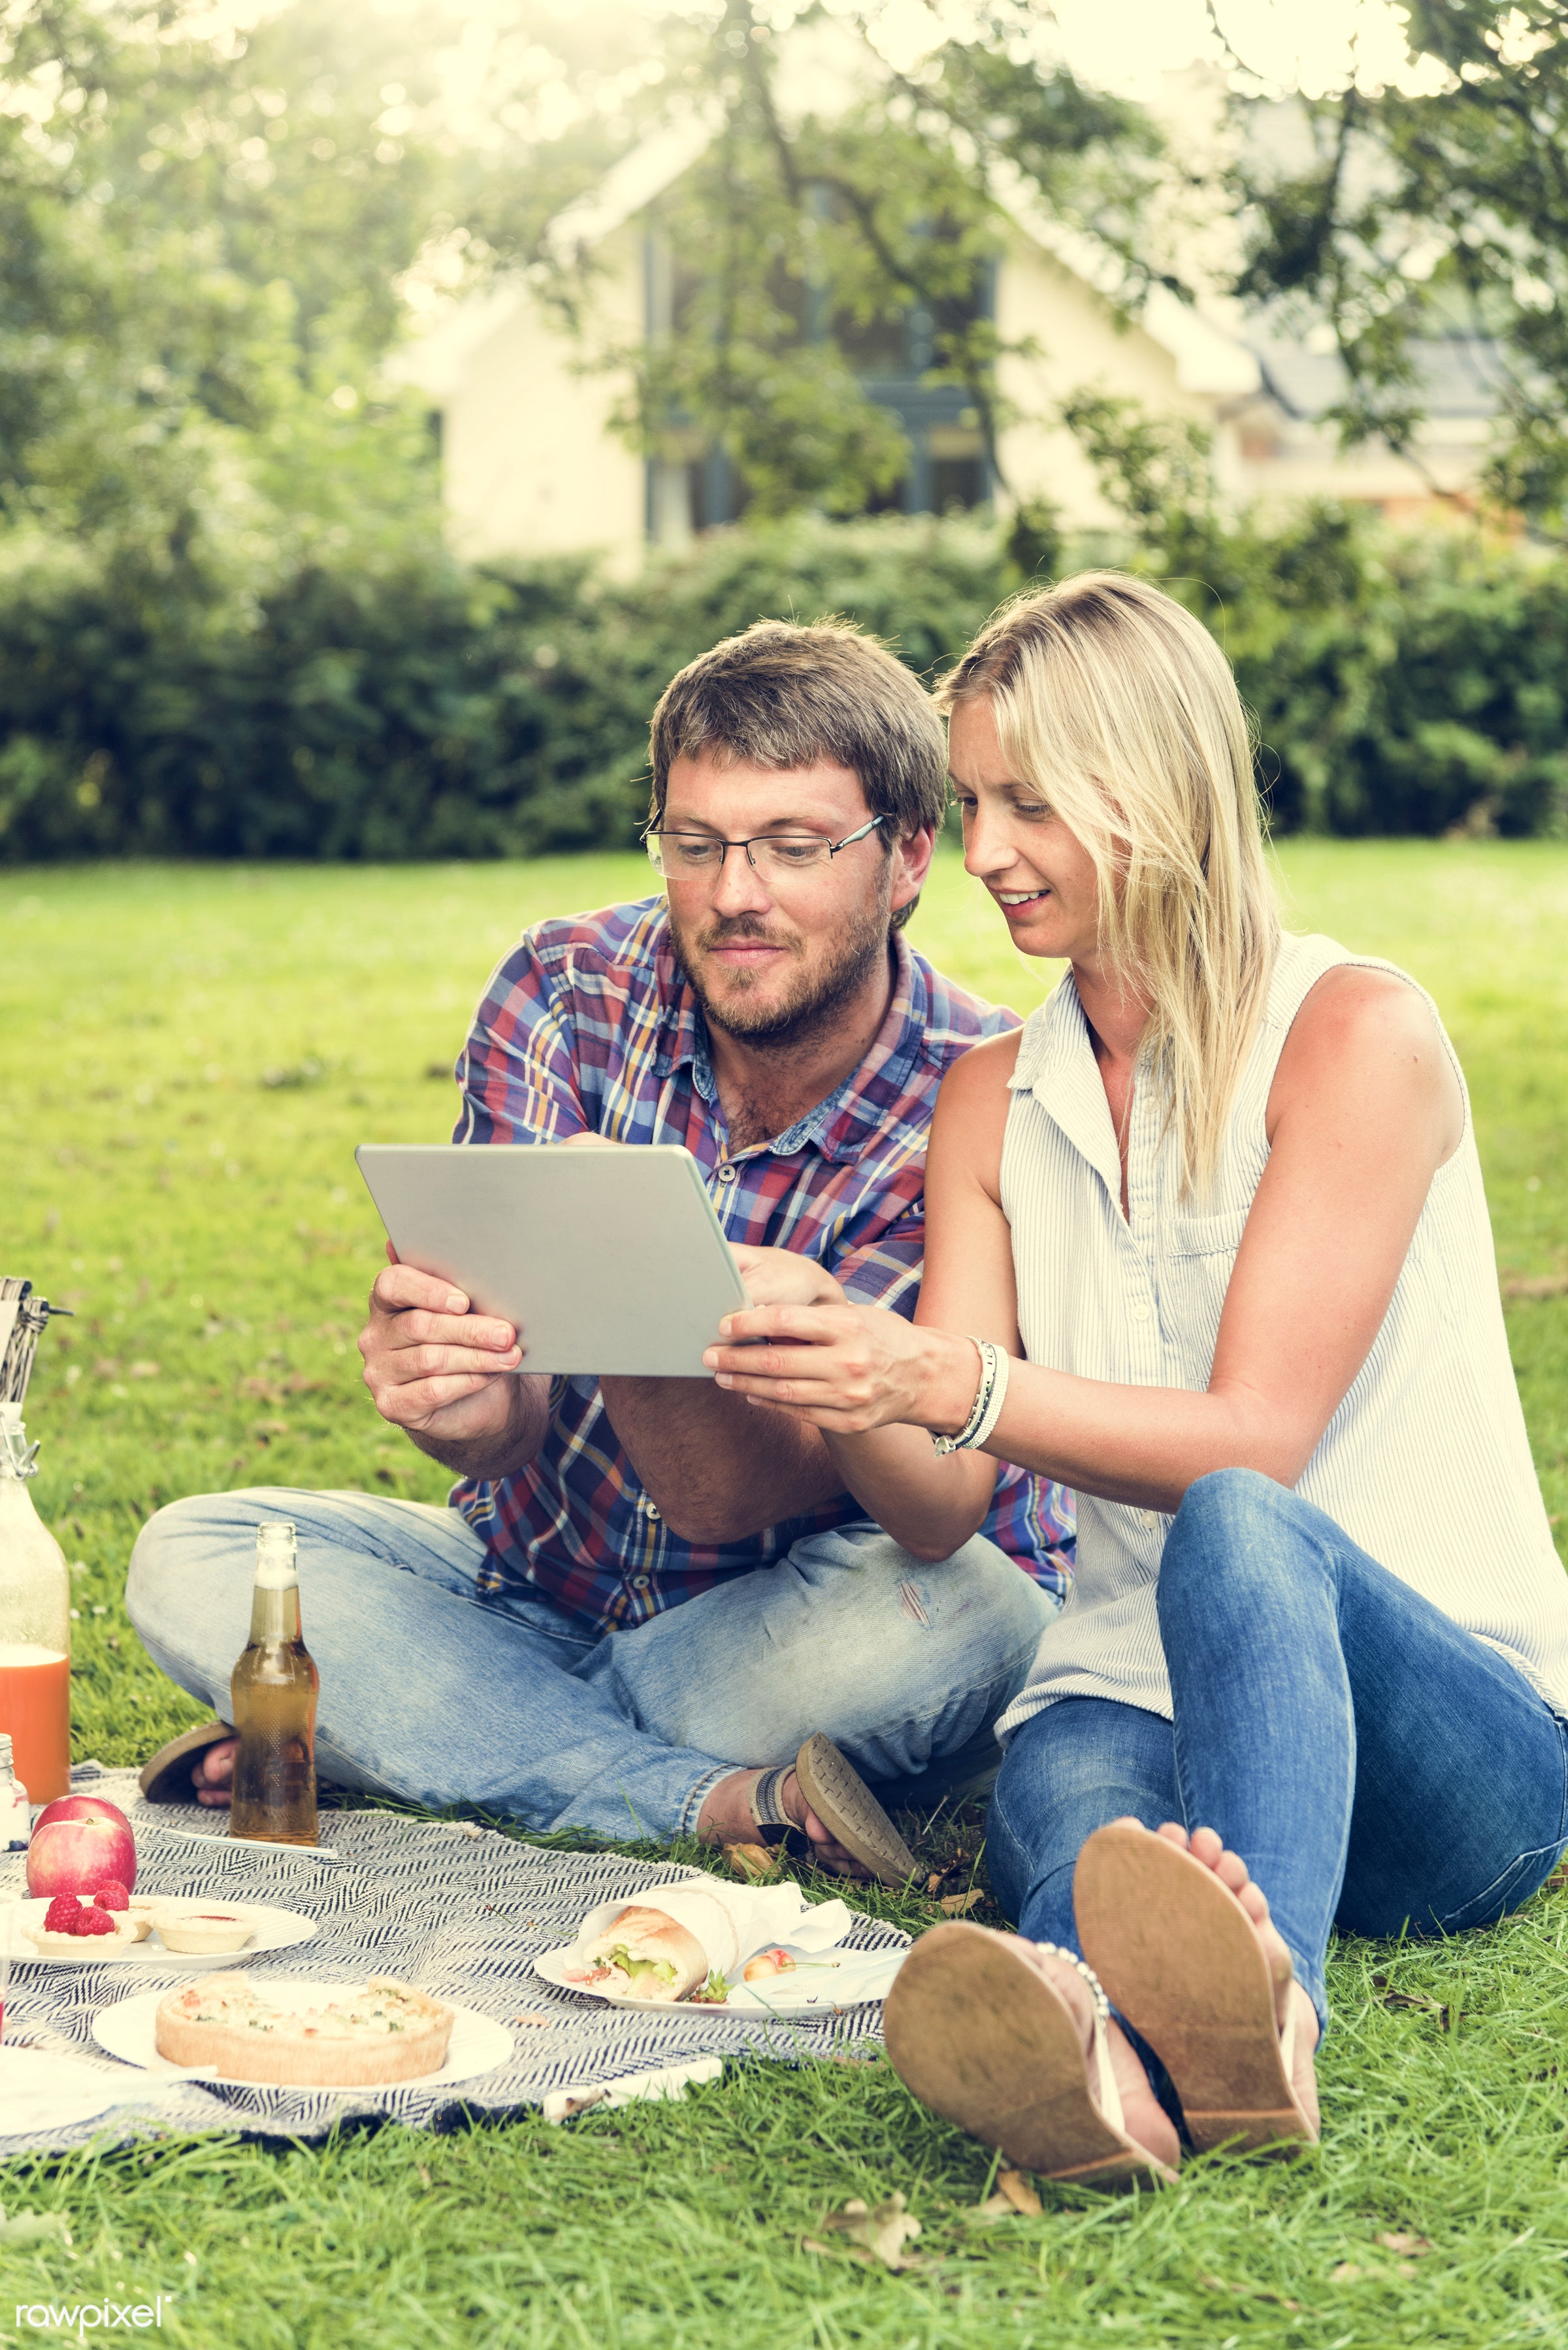 beer, bonding, care, casual, cheerful, connection, dating, digital tablet, drinks, enjoyment, environmental, family, father...